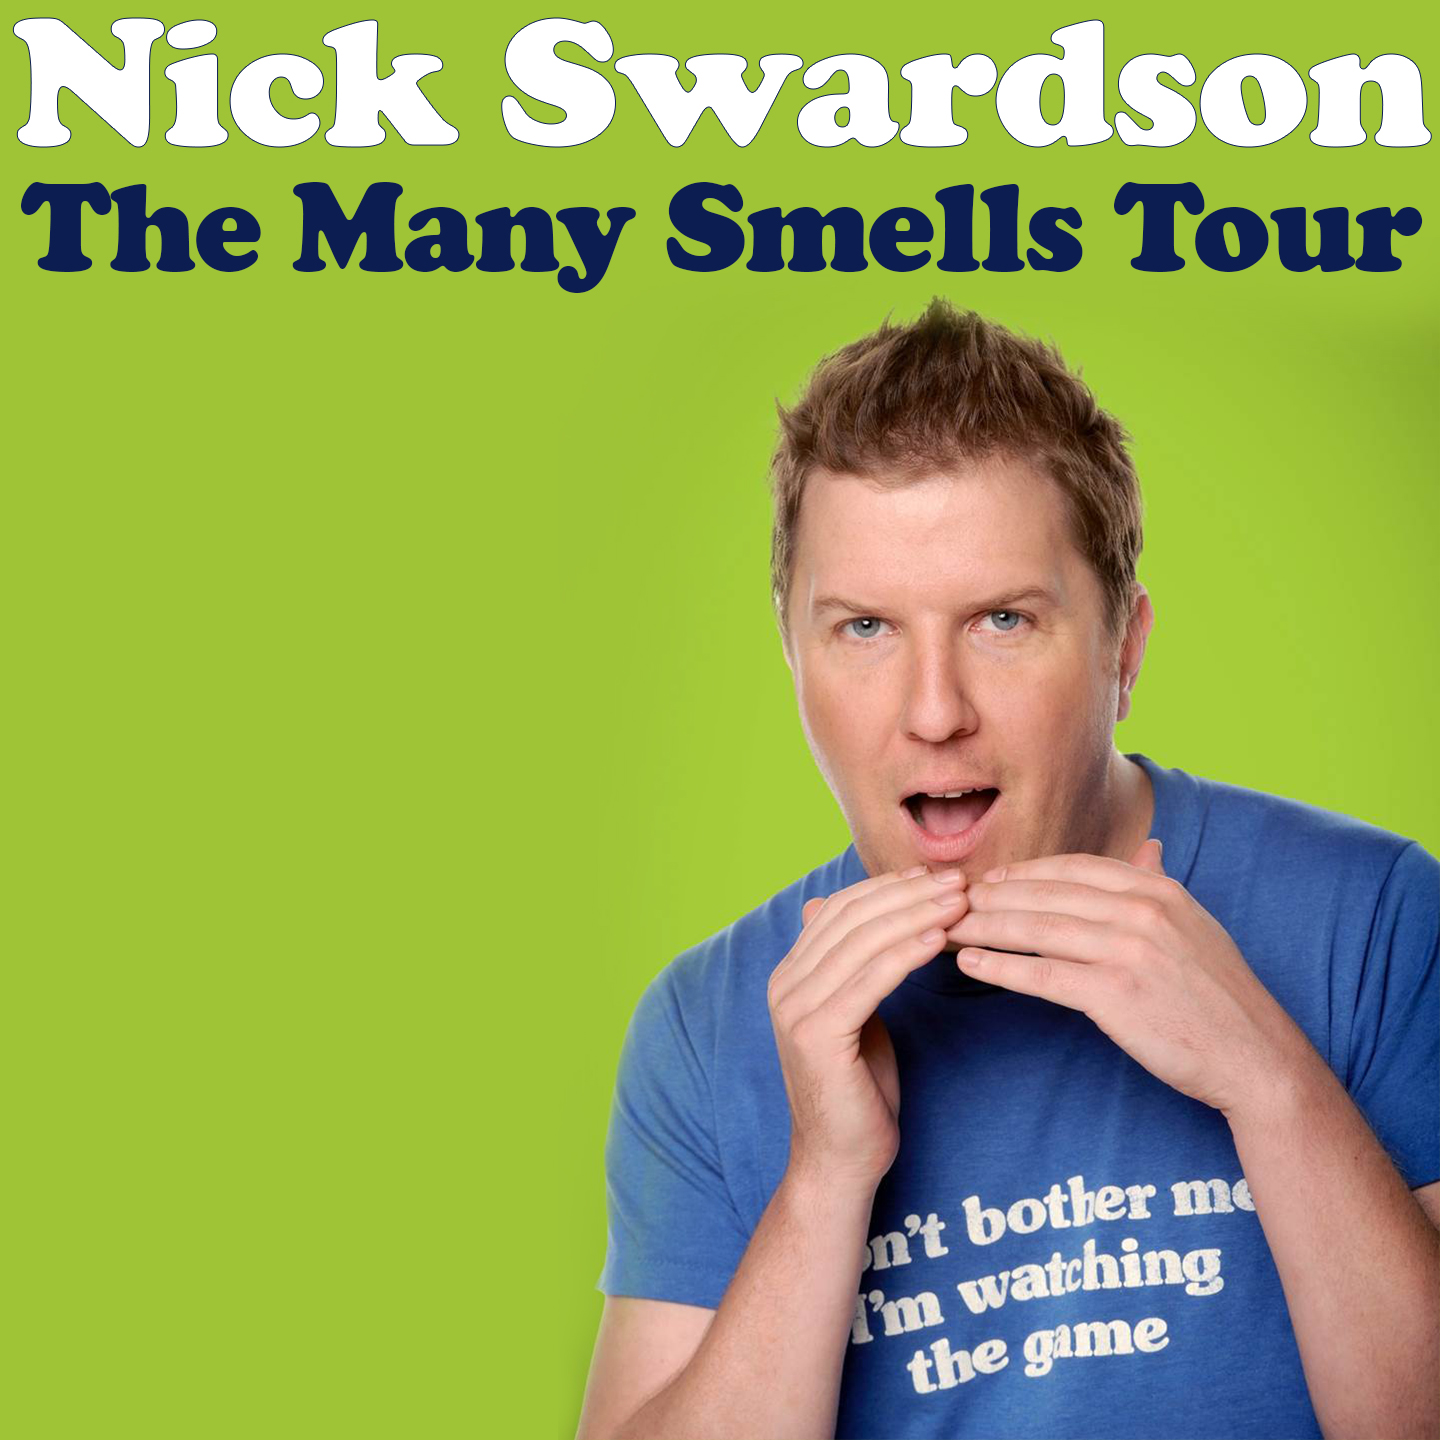 Nick Swardson: The Many Smells Tour